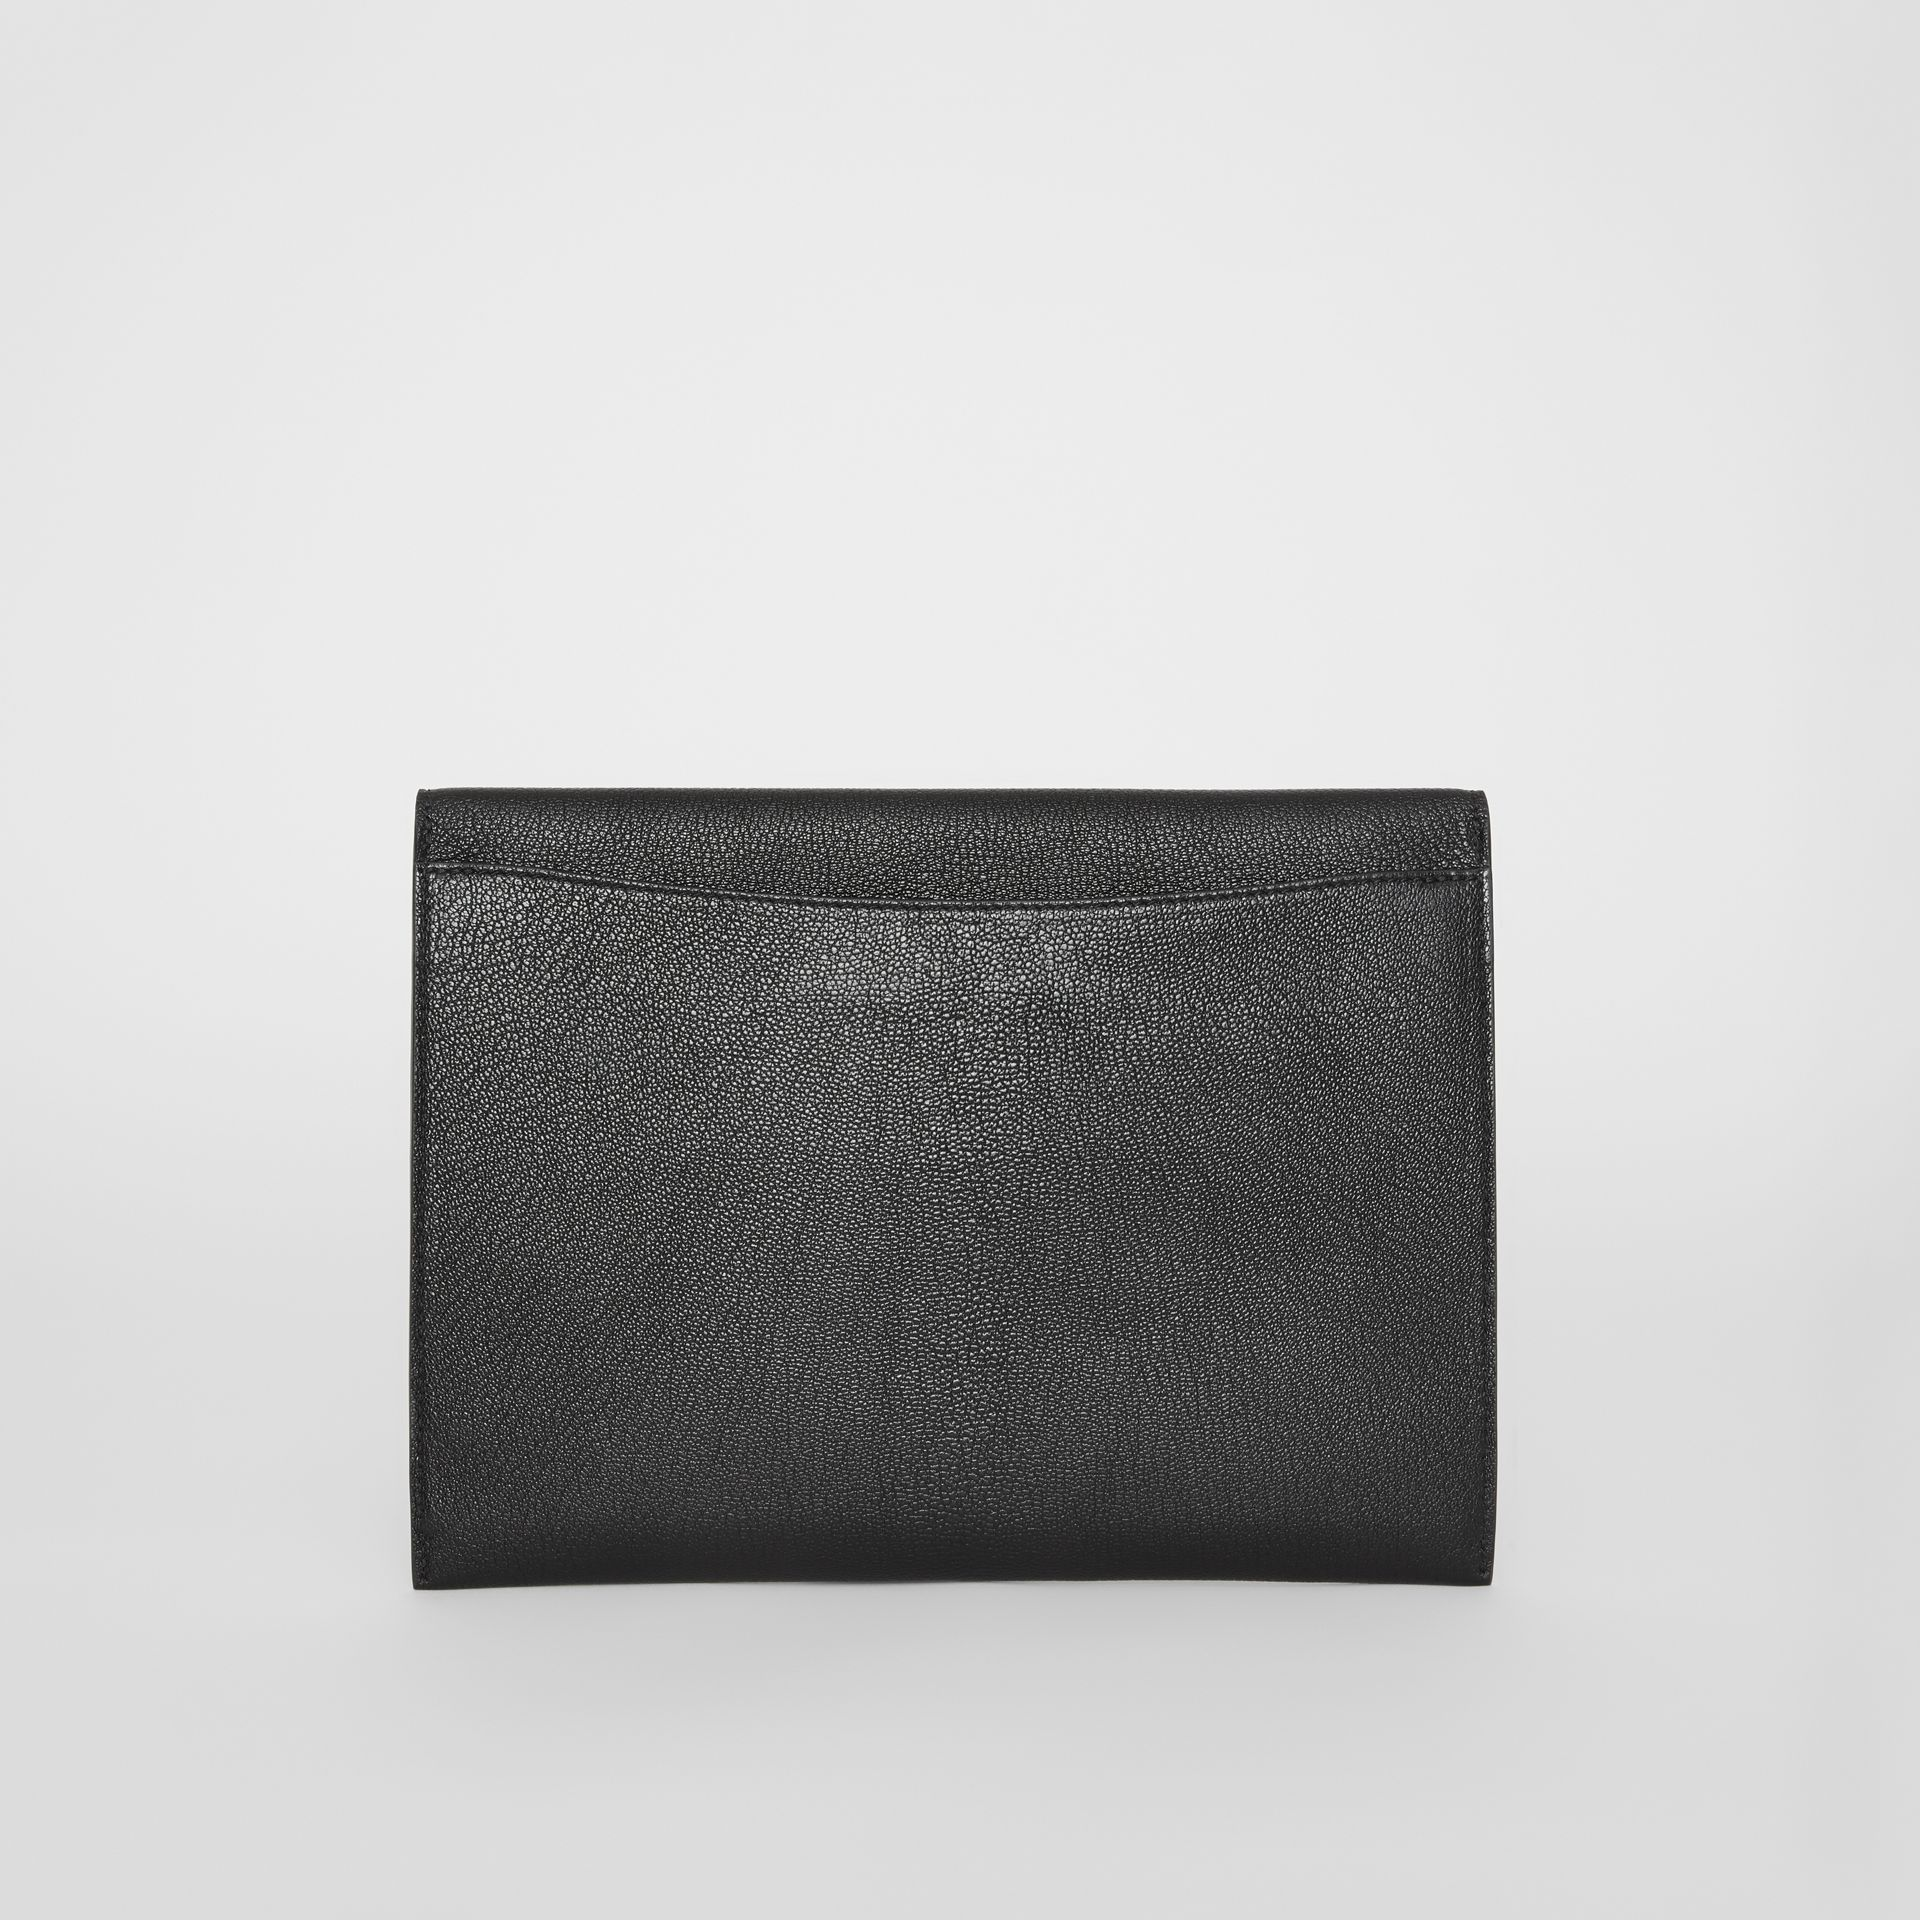 D-ring Leather Pouch in Black - Women | Burberry - gallery image 5